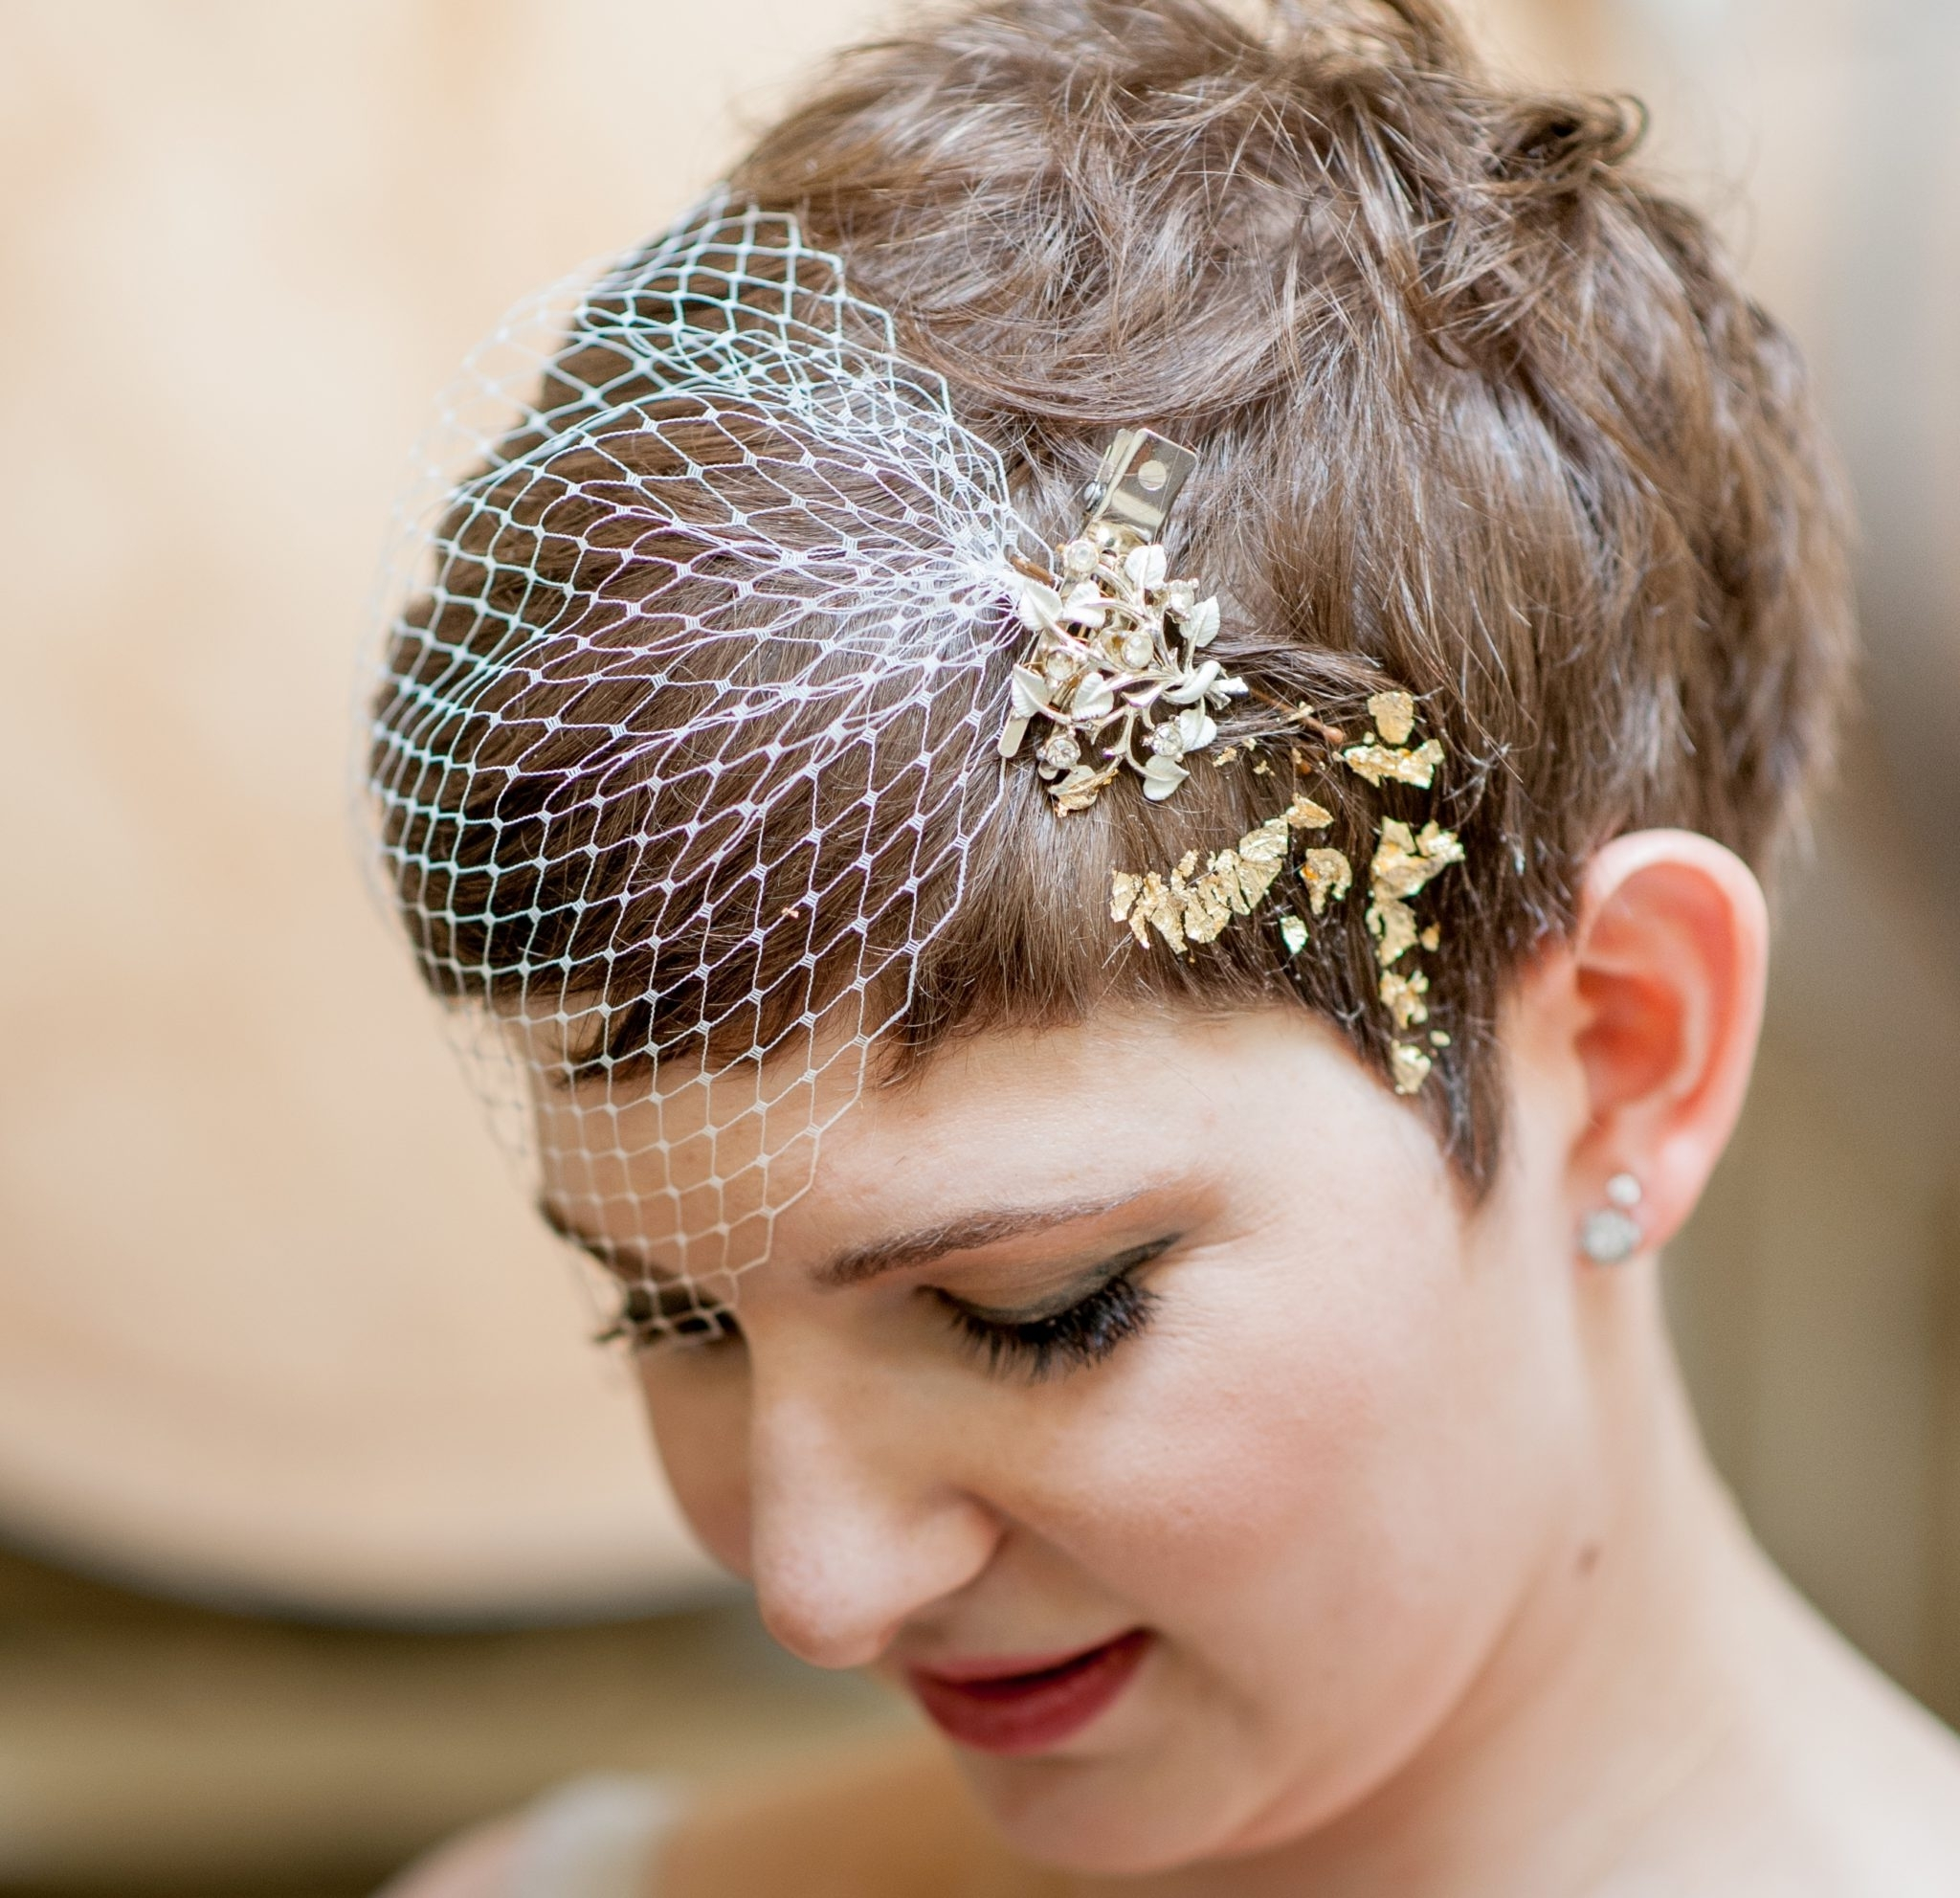 15 photos pixie hairstyles accessories wedding hairstyle brides pixie haircut brown hair with veil for most recently pixie hairstyles accessories winobraniefo Image collections